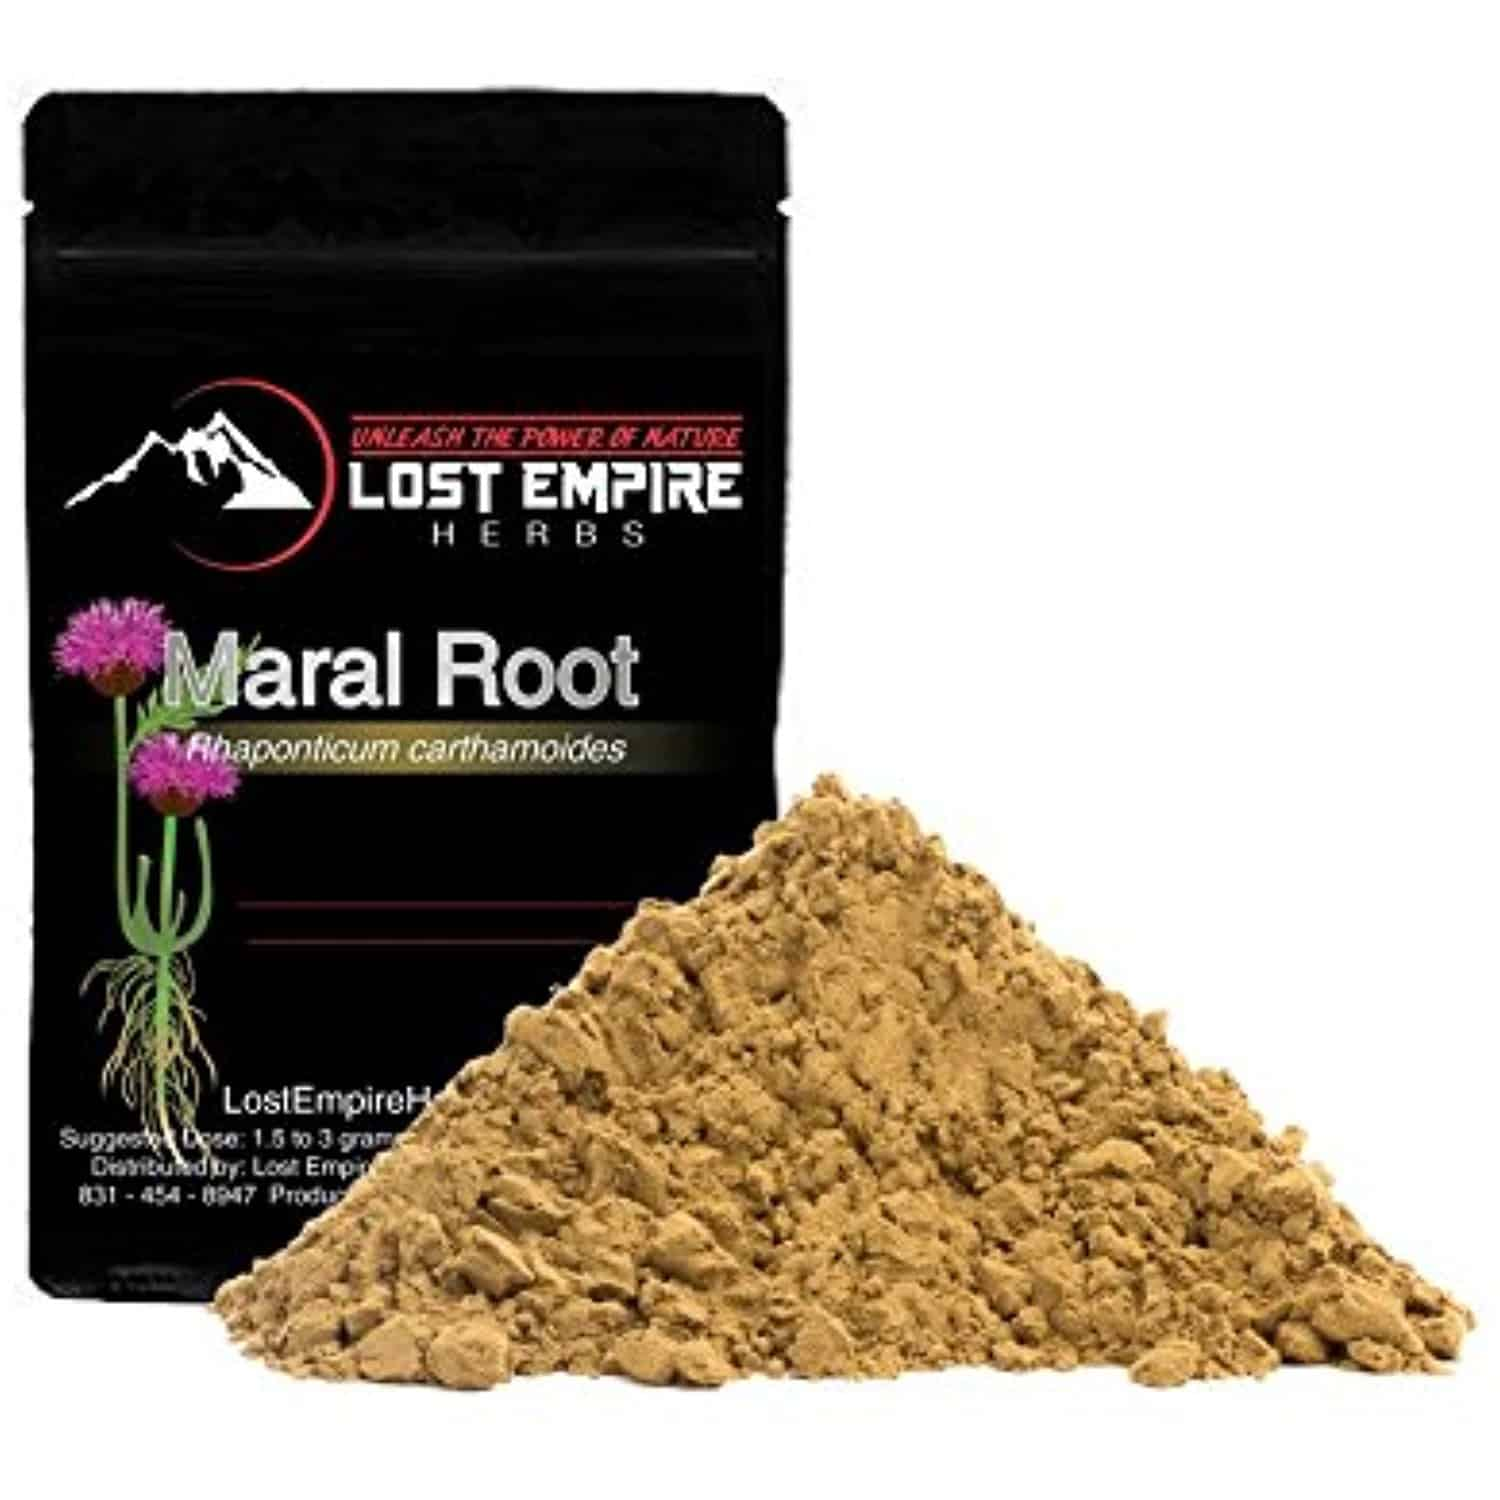 Maral Root